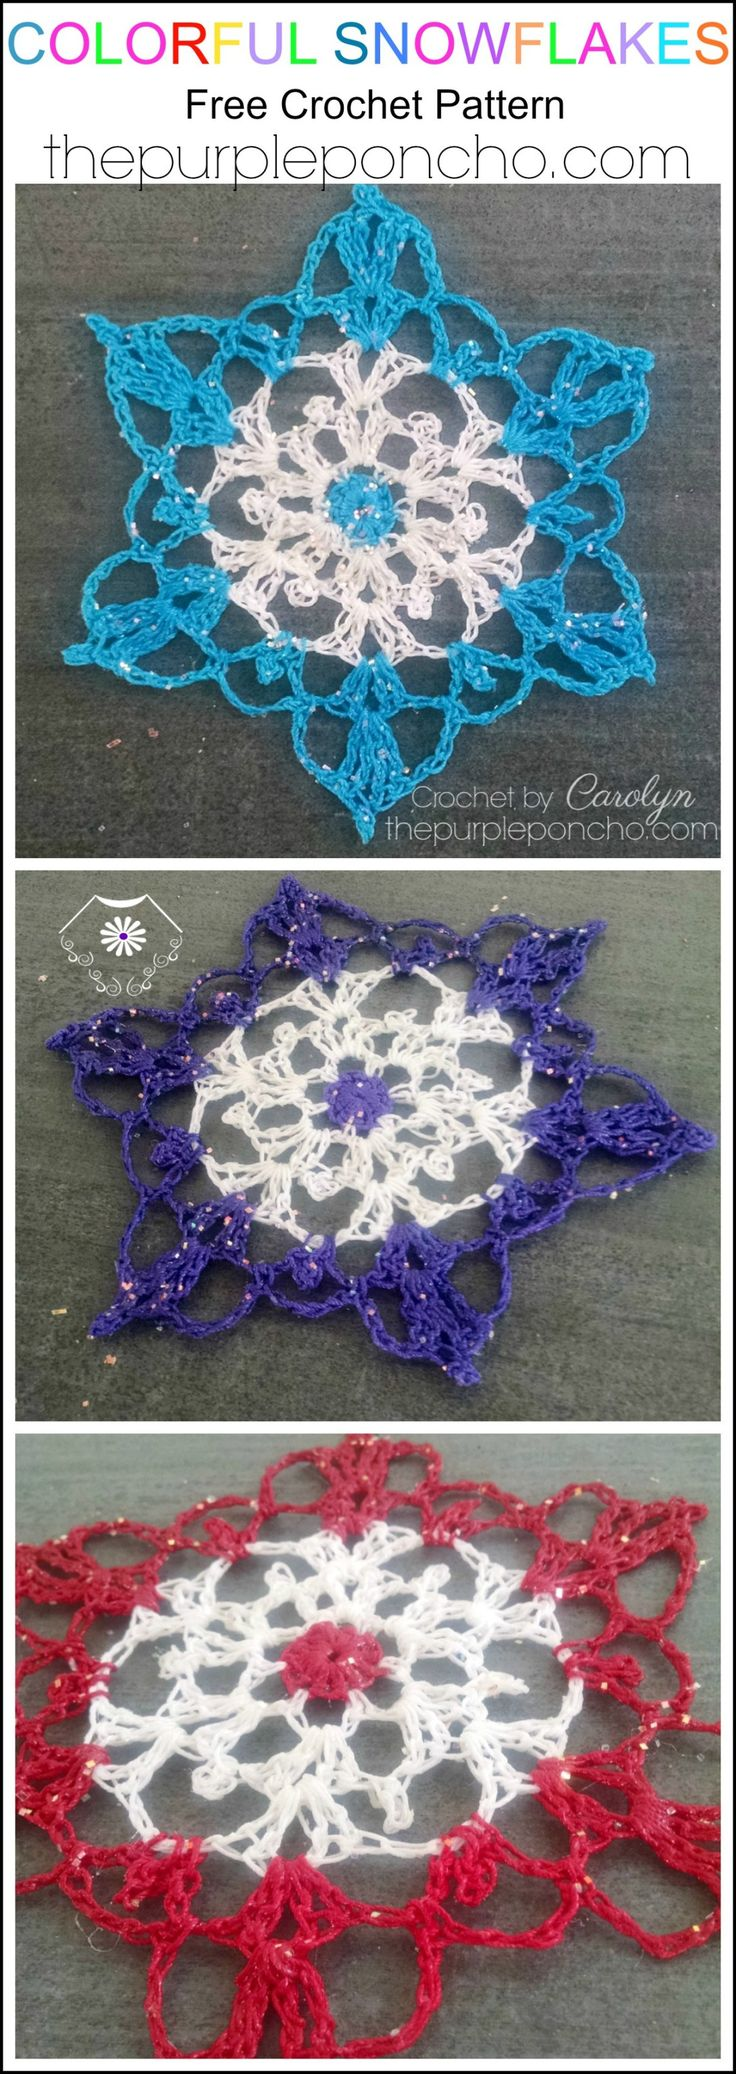 One of my favorite things to make at Christmas are crocheted snowflakes. I've made these a little different this year by adding bright, fun colors to them. They make great gifts a…